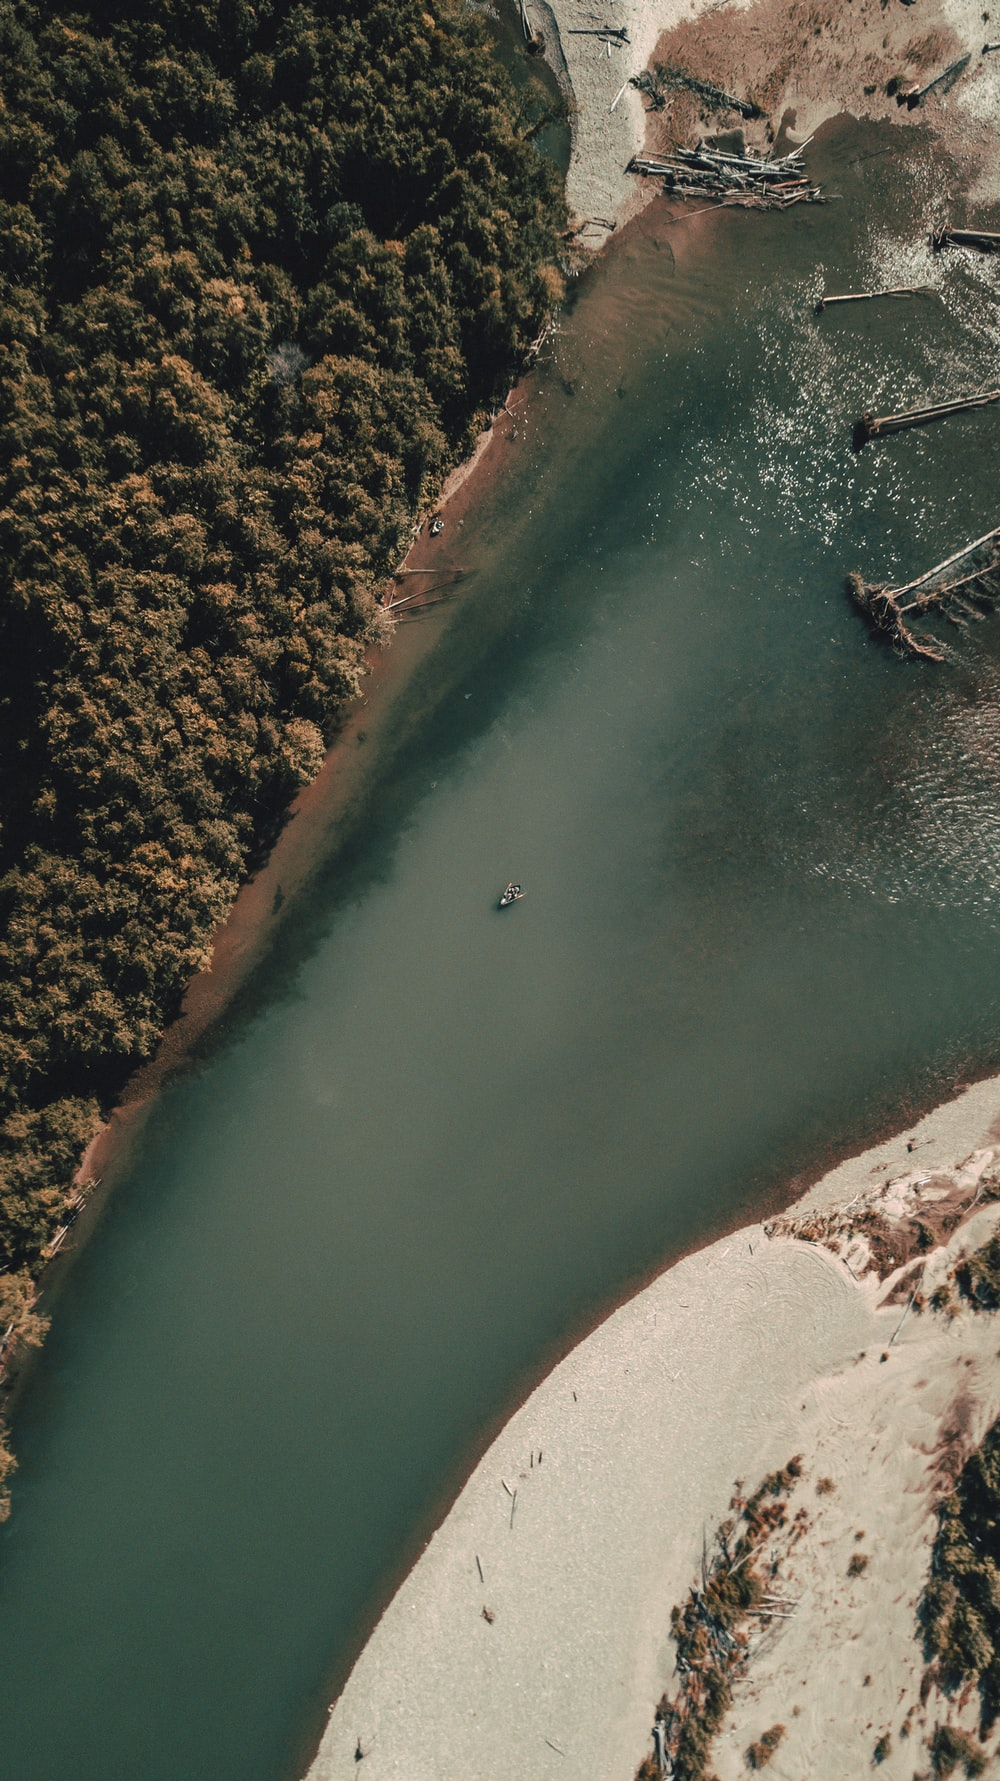 aerial view of body of water during daytime